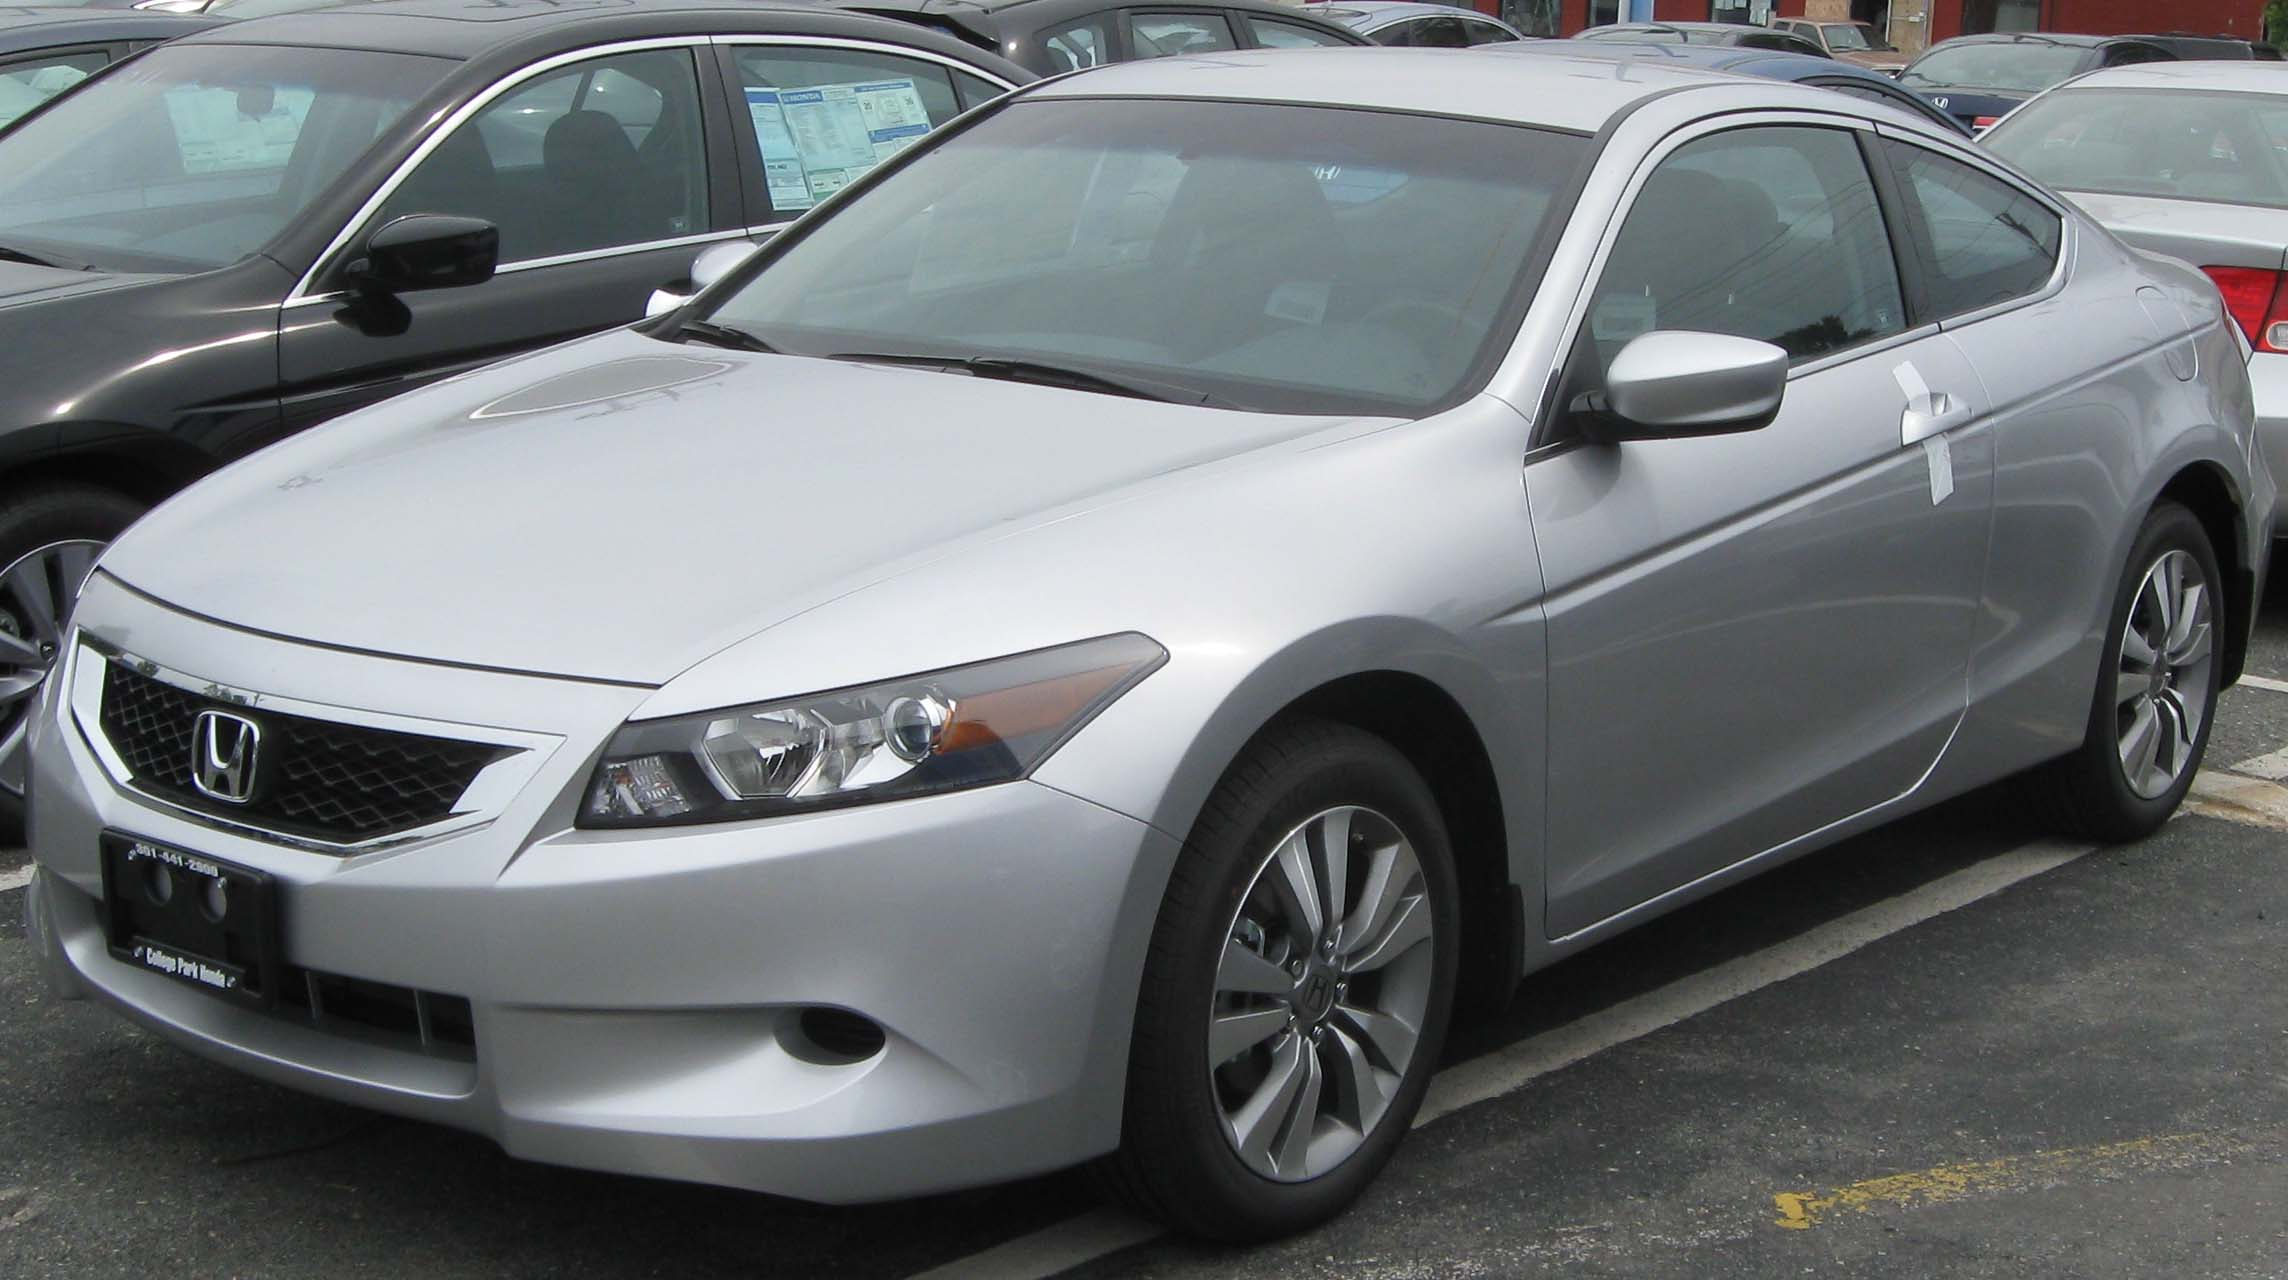 File:2010 Honda Accord LX-S coupe -- 09-03-2010.jpg - Wikipedia, the ...